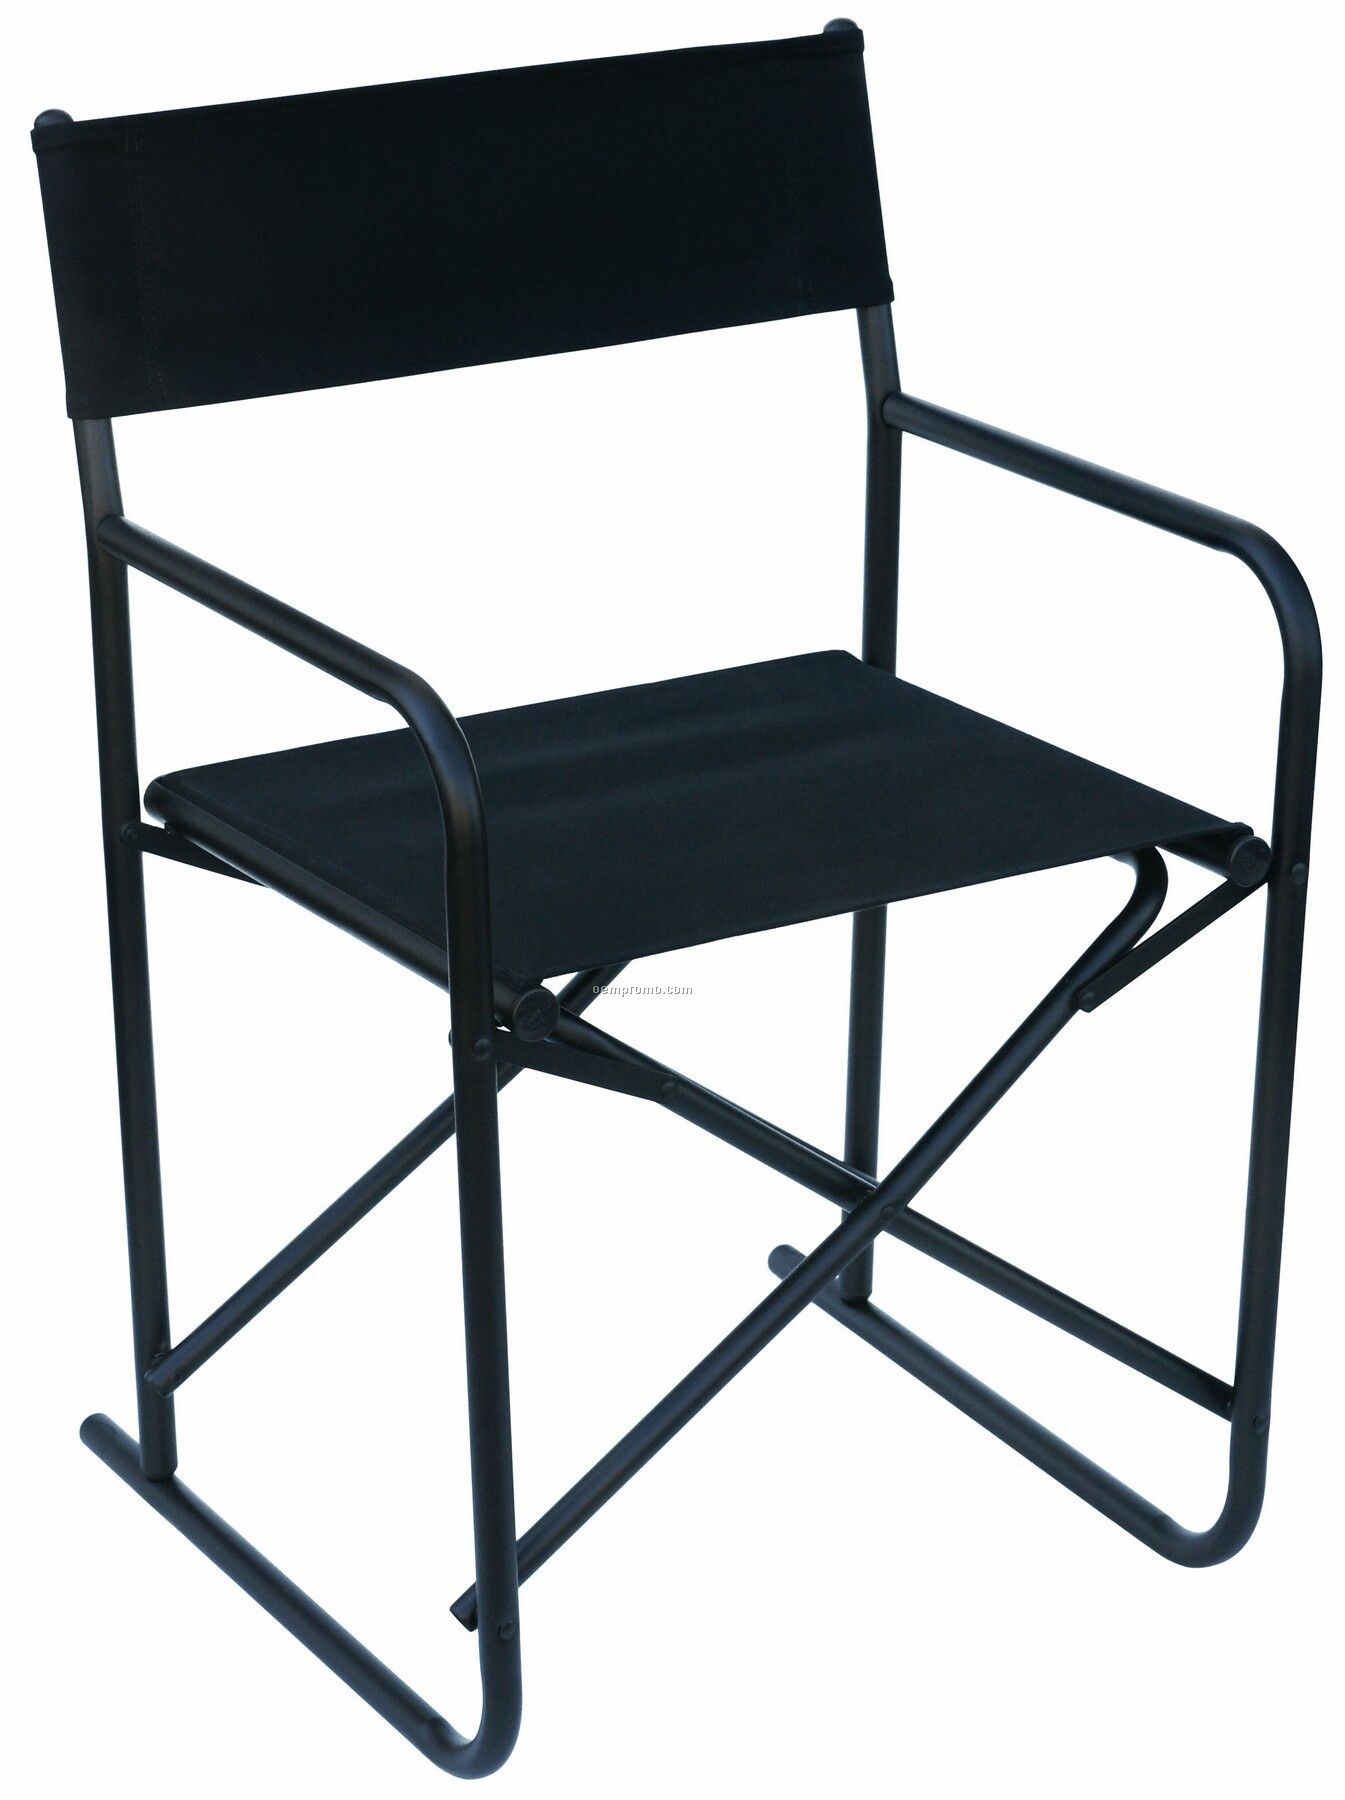 Us Made Dining Ht Aluminum Director Chair With Cotton Canvas Seat And Back China Wholesale Us